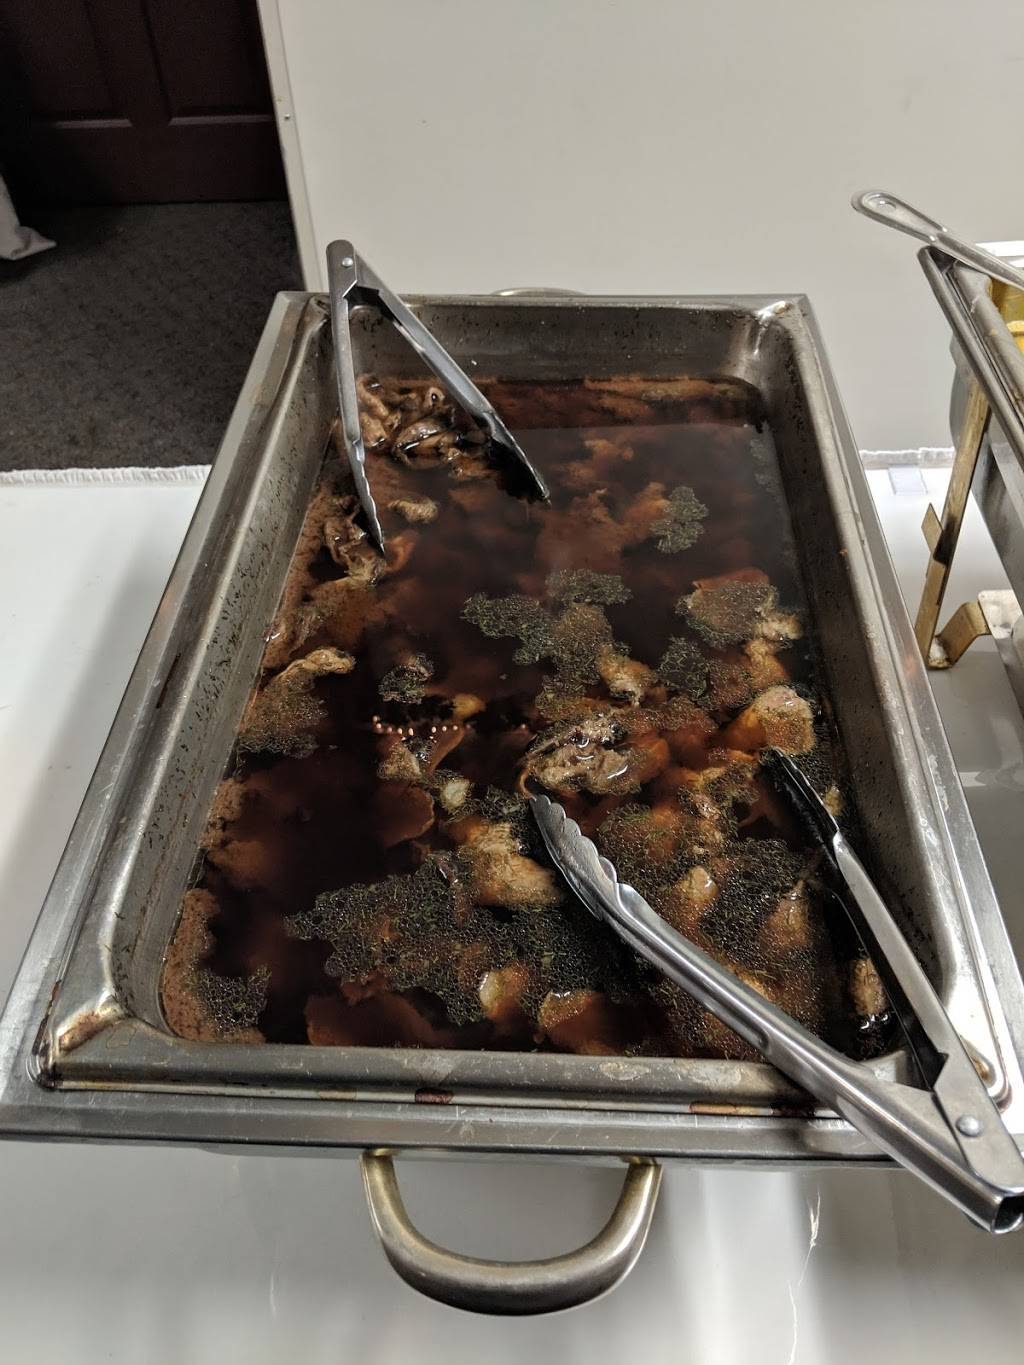 The Gentry Catering | restaurant | 116 E Liberty St, Hubbard, OH 44425, USA | 3305344710 OR +1 330-534-4710